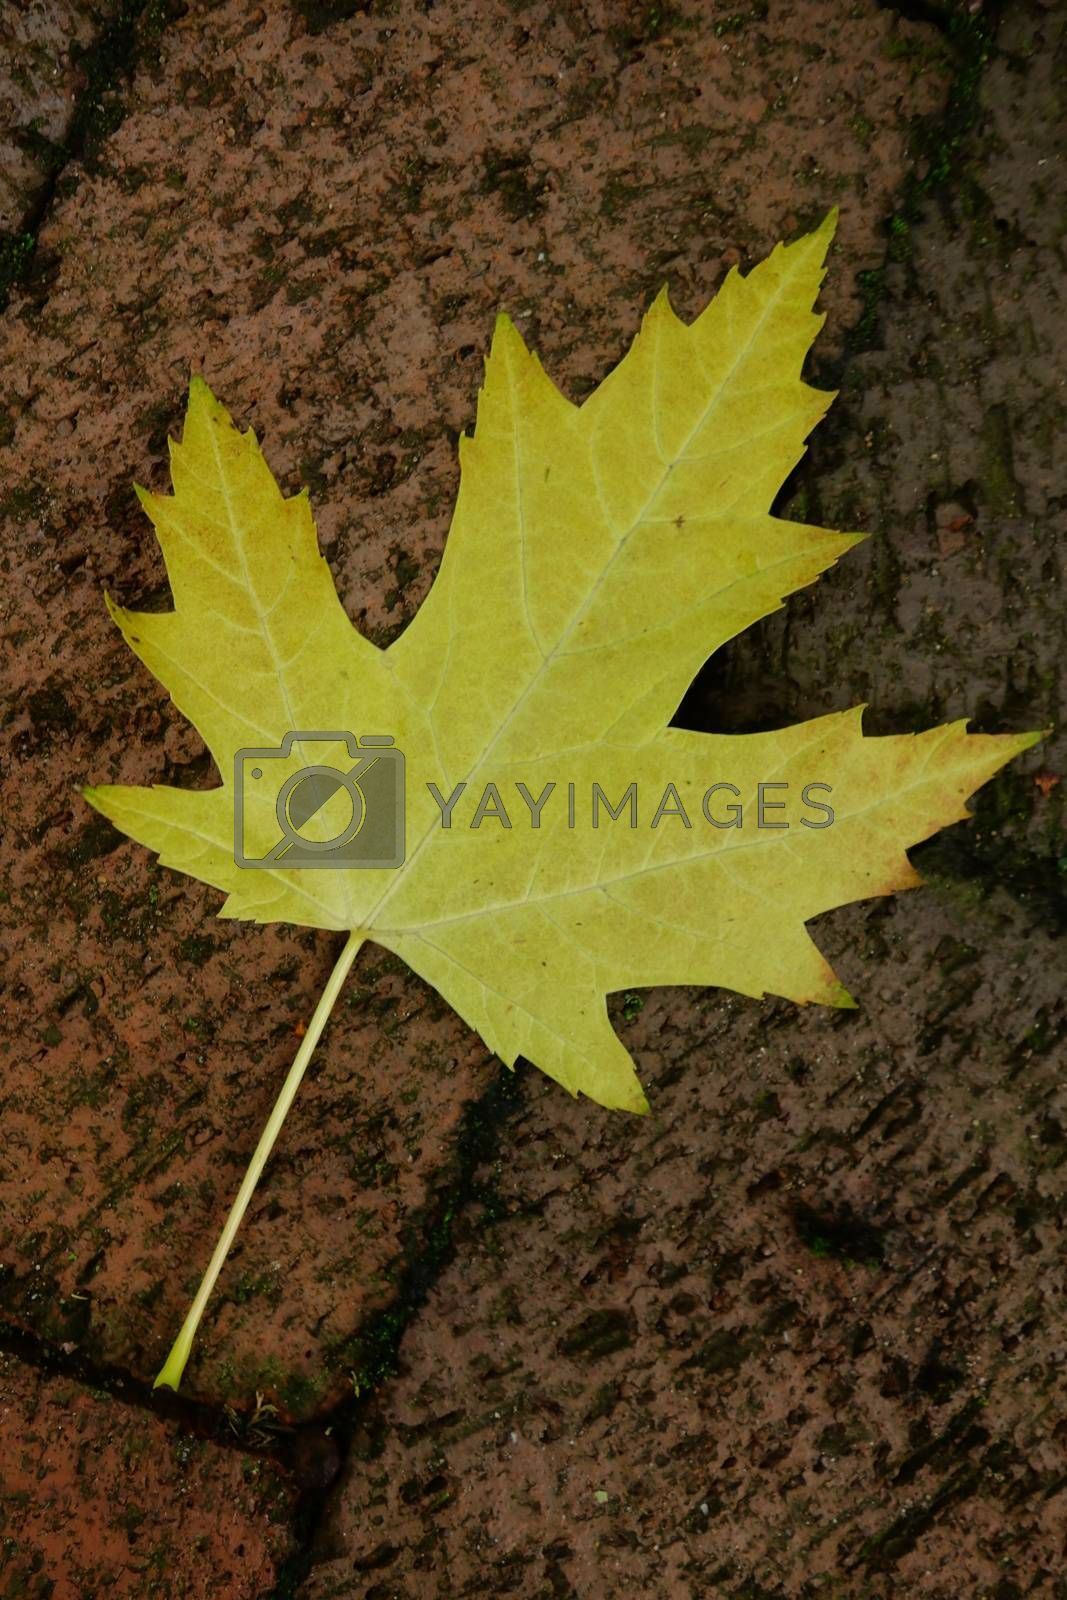 Yellow Sycamore Leaf by James53145